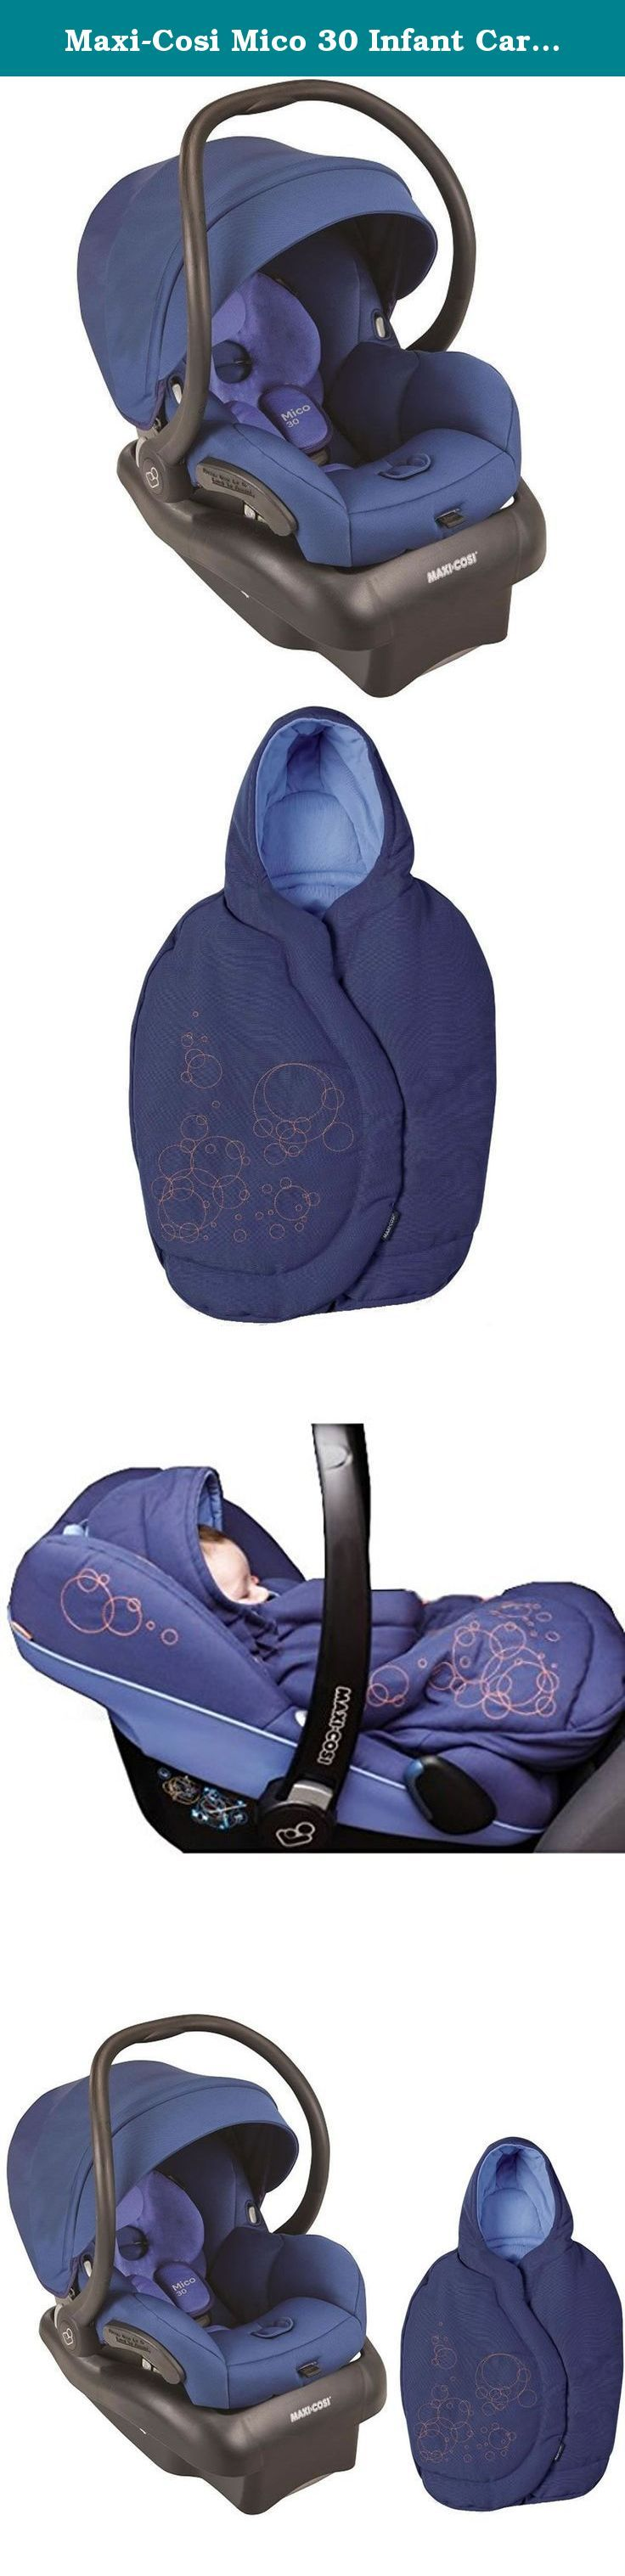 Maxi-Cosi Mico 30 Infant Car Seat With Infant Car Seat Footmuff (Vivid Blue/Lapis Blue). Happy travels are ahead with the Maxi-Cosi Mico 30. The lightest infant car seat in its class, the ergonomic handle provides extra comfort for parents while carrying this lightweight seat. Transferring from the stay-in-car base to a Maxi-Cosi, Quinny, or other premium stroller is a breeze, making the Mico 30 infant seat a great solution for parents looking for a complete travel system they can use…